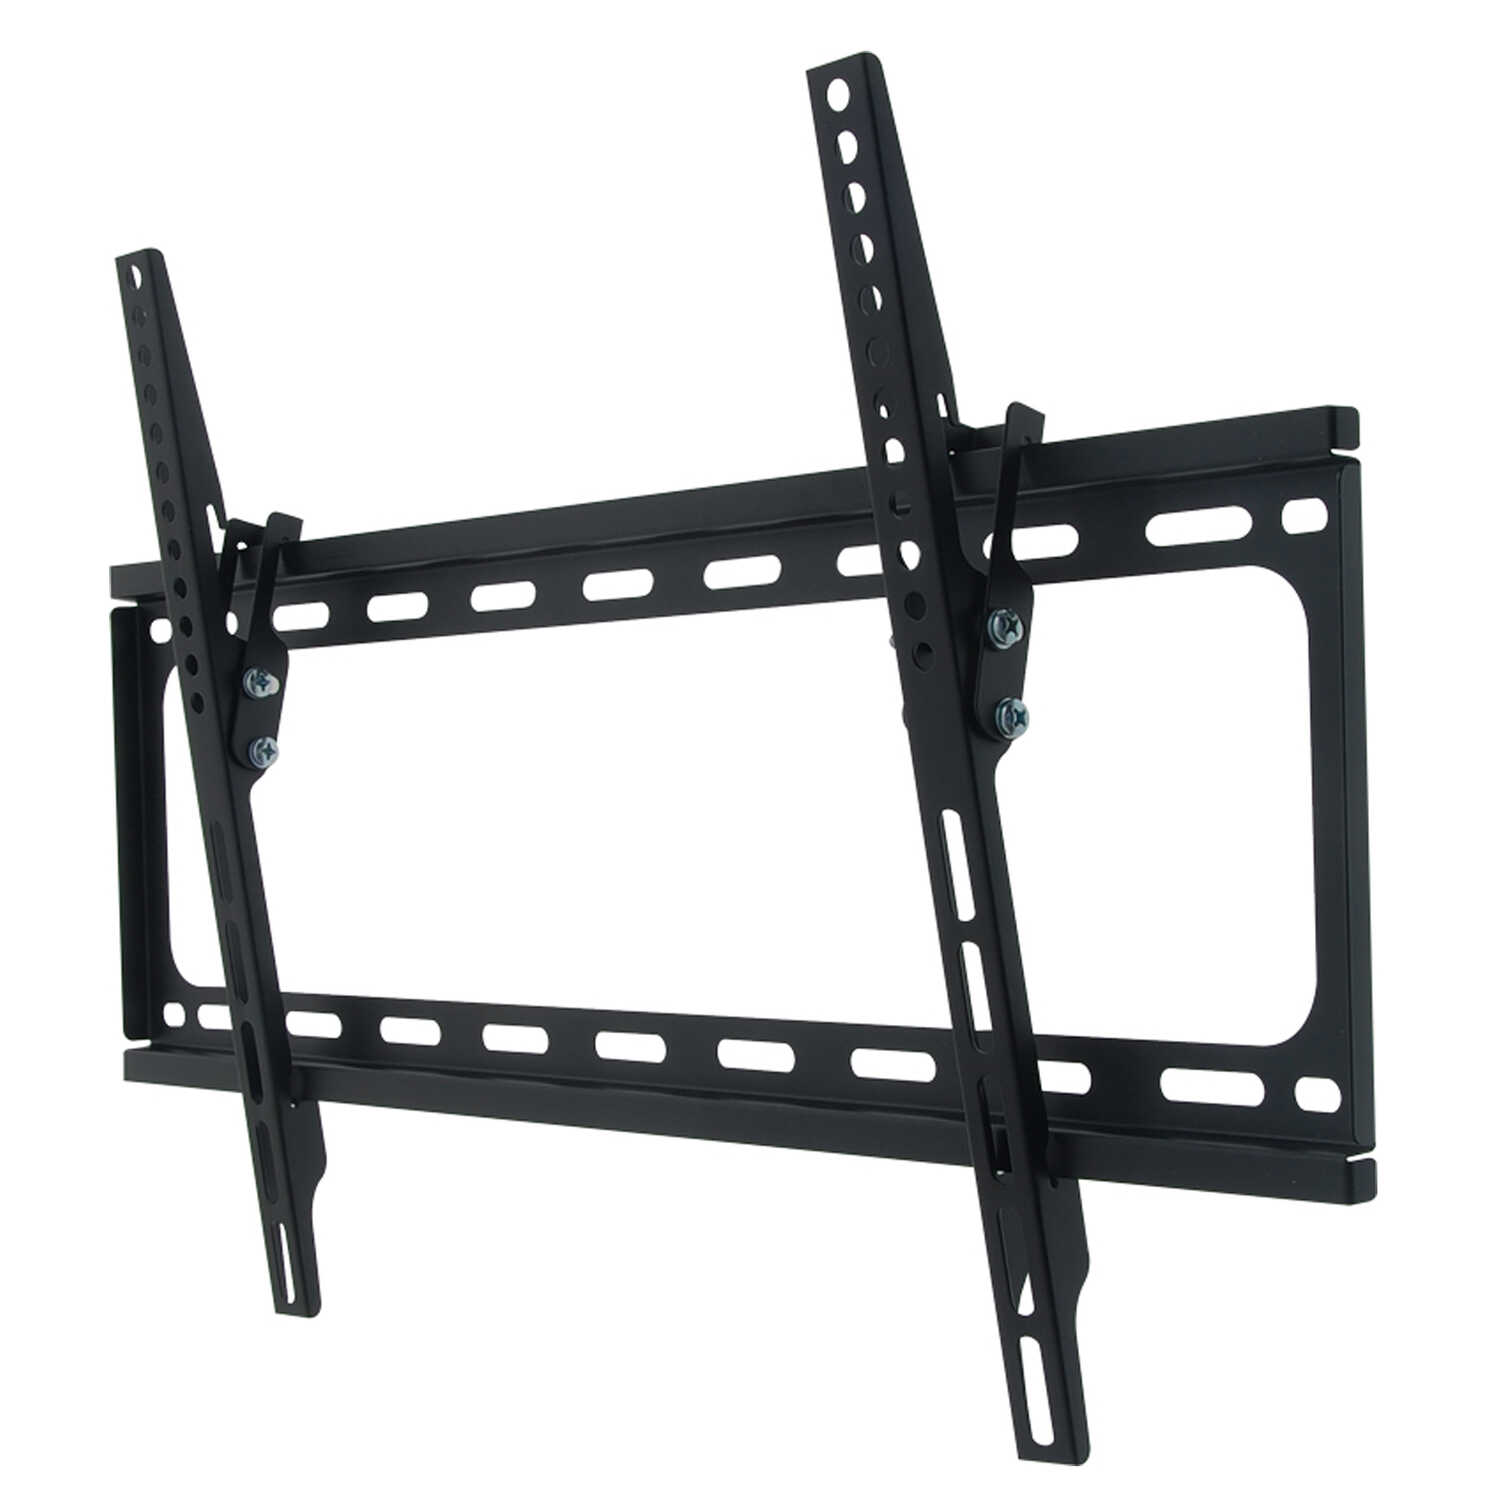 Monster Cable  30 in. to 65 in. 75 lb. capacity Tiltable TV Tilt Wall Mount